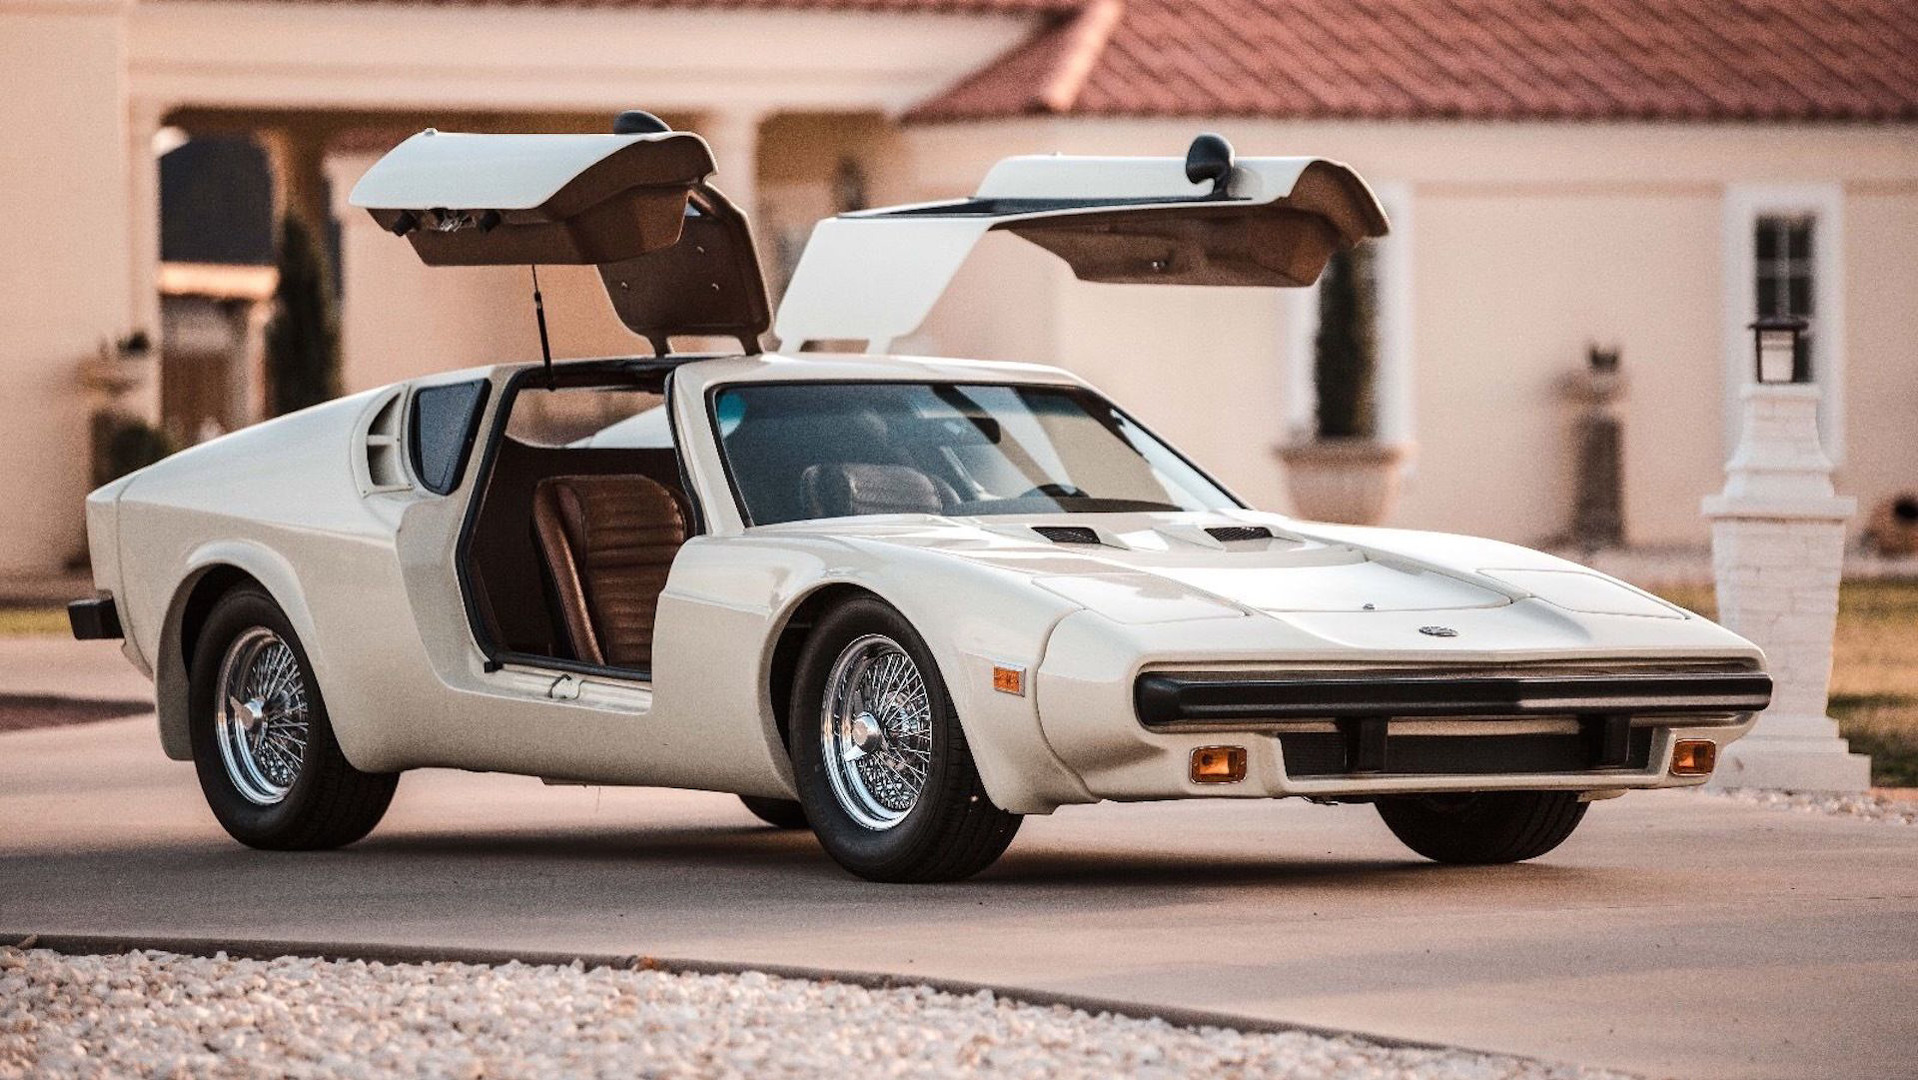 Buy This VW Kit Car For Cheap, Fulfill Your \'70s Sports Car Dreams